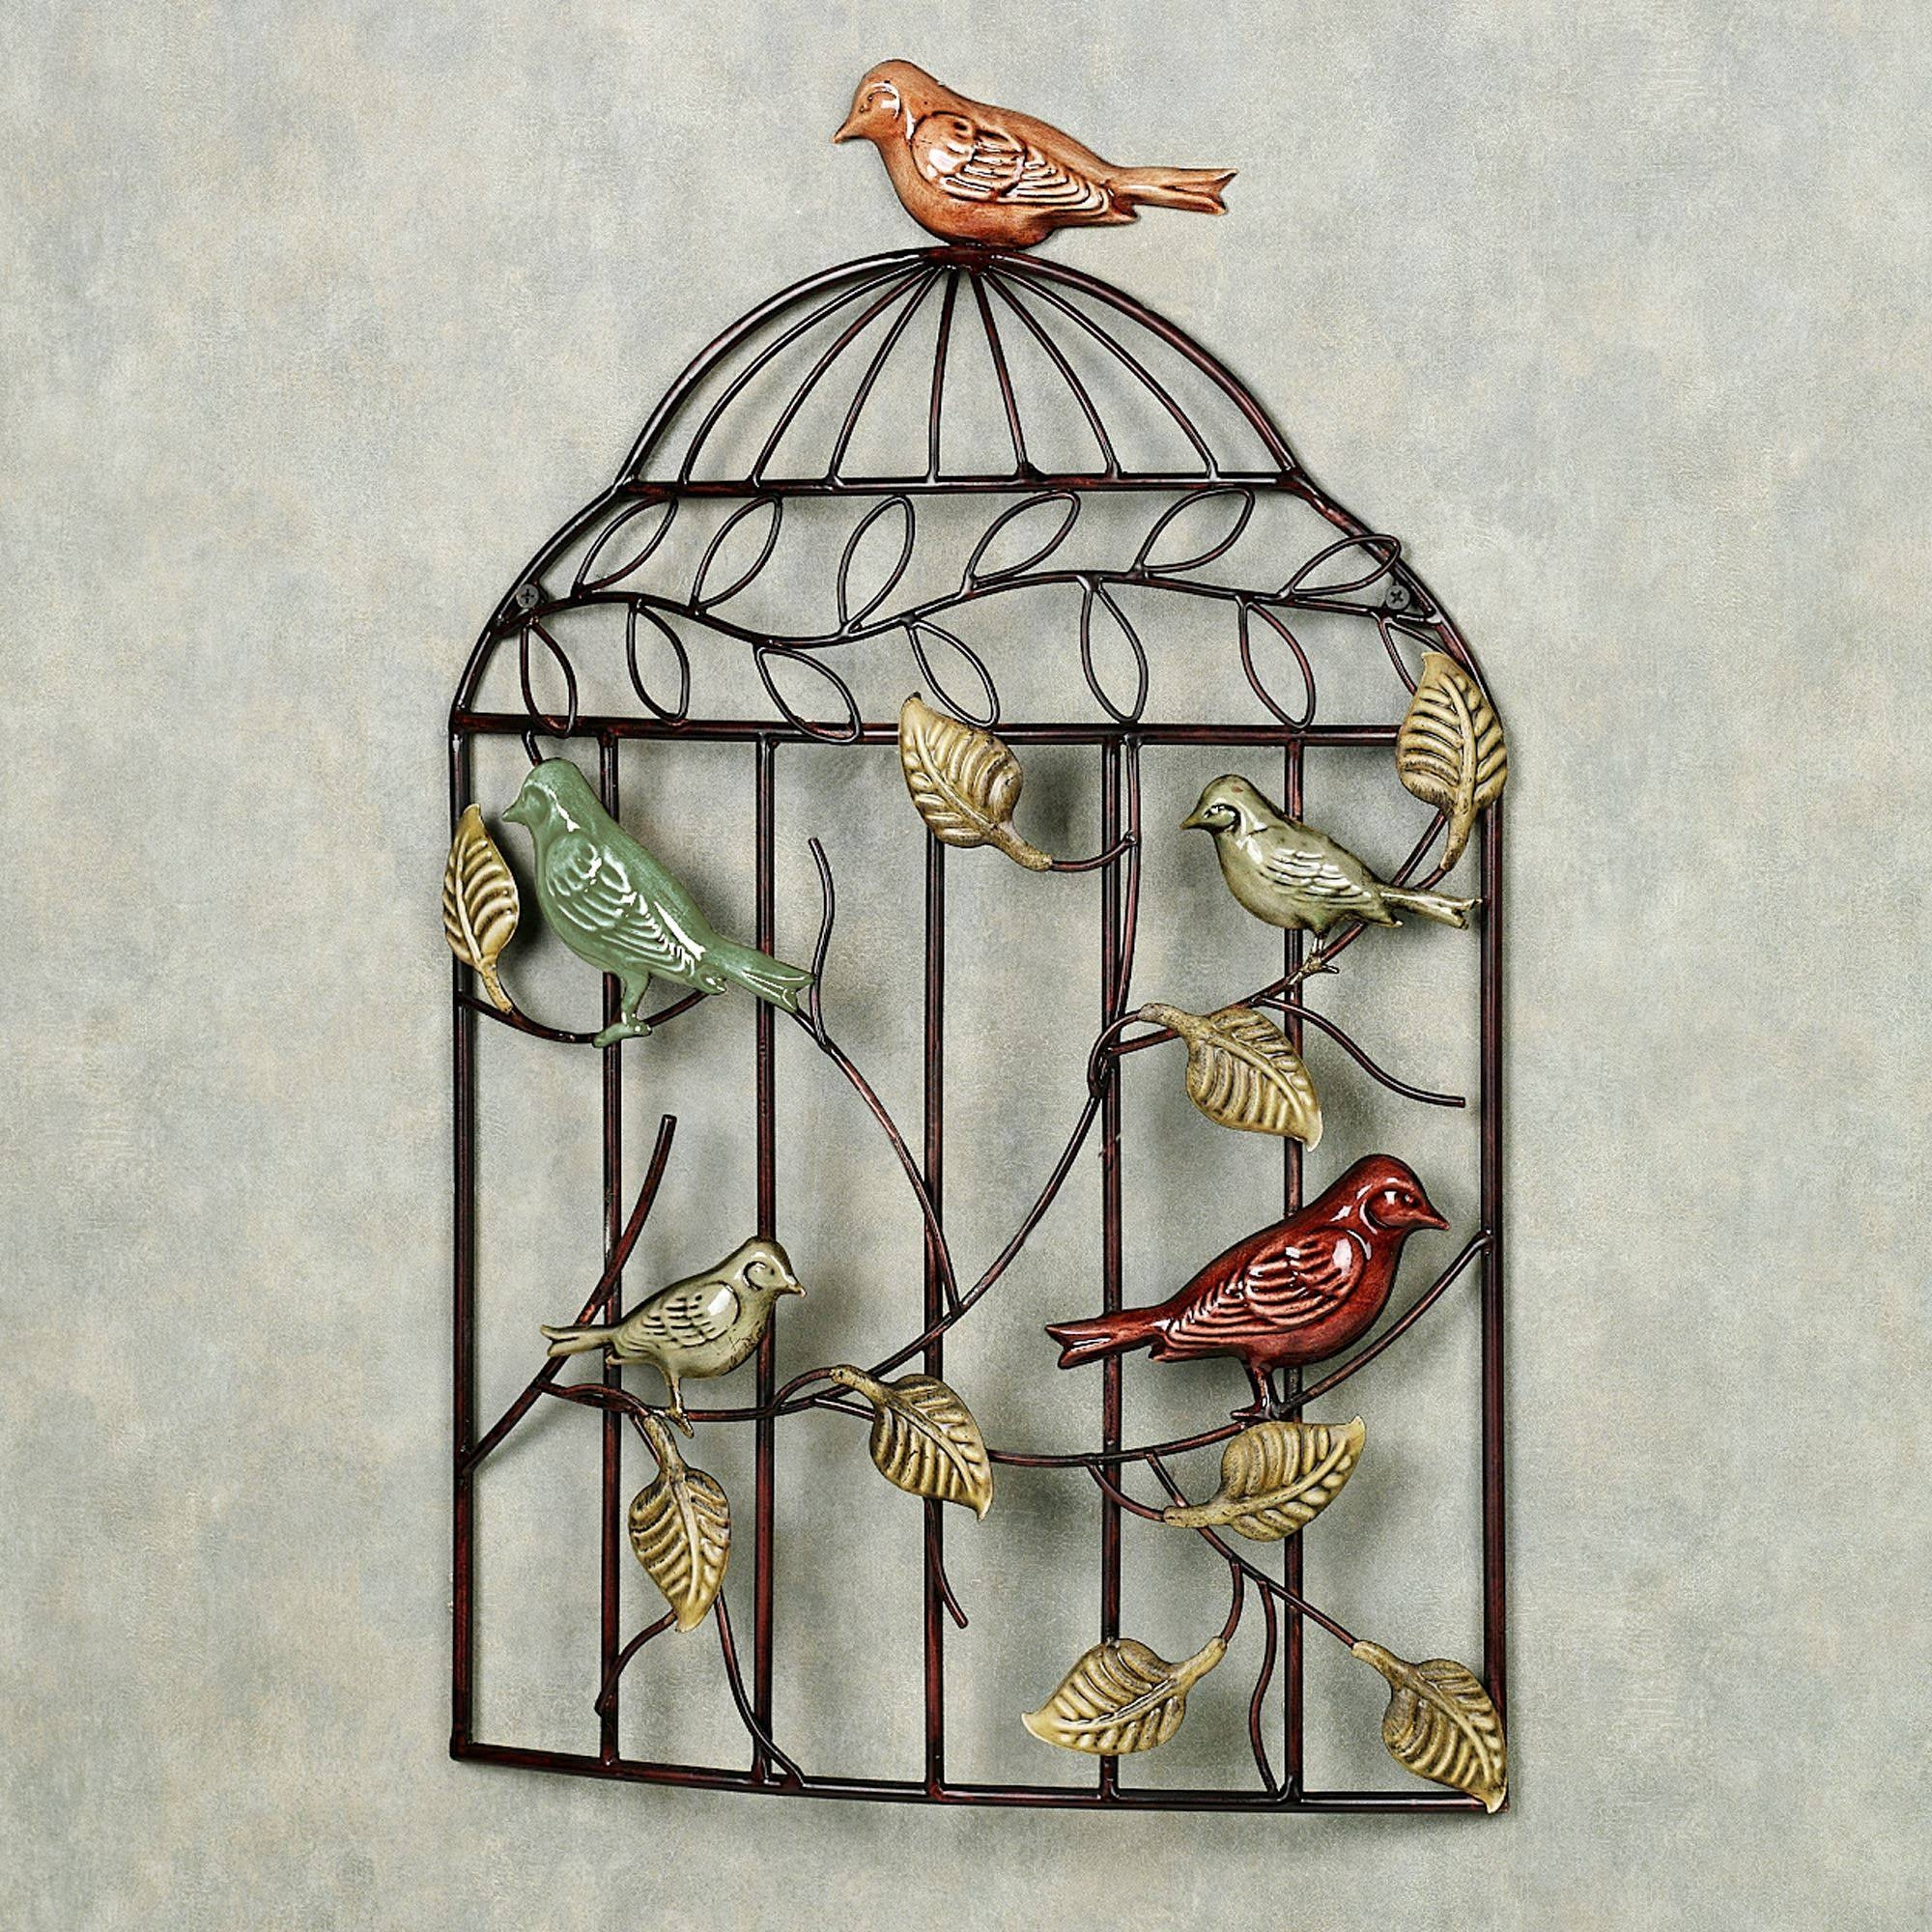 Bird Sanctuary Cage Metal Wall Art Within Latest Birdcage Metal Wall Art (View 6 of 20)